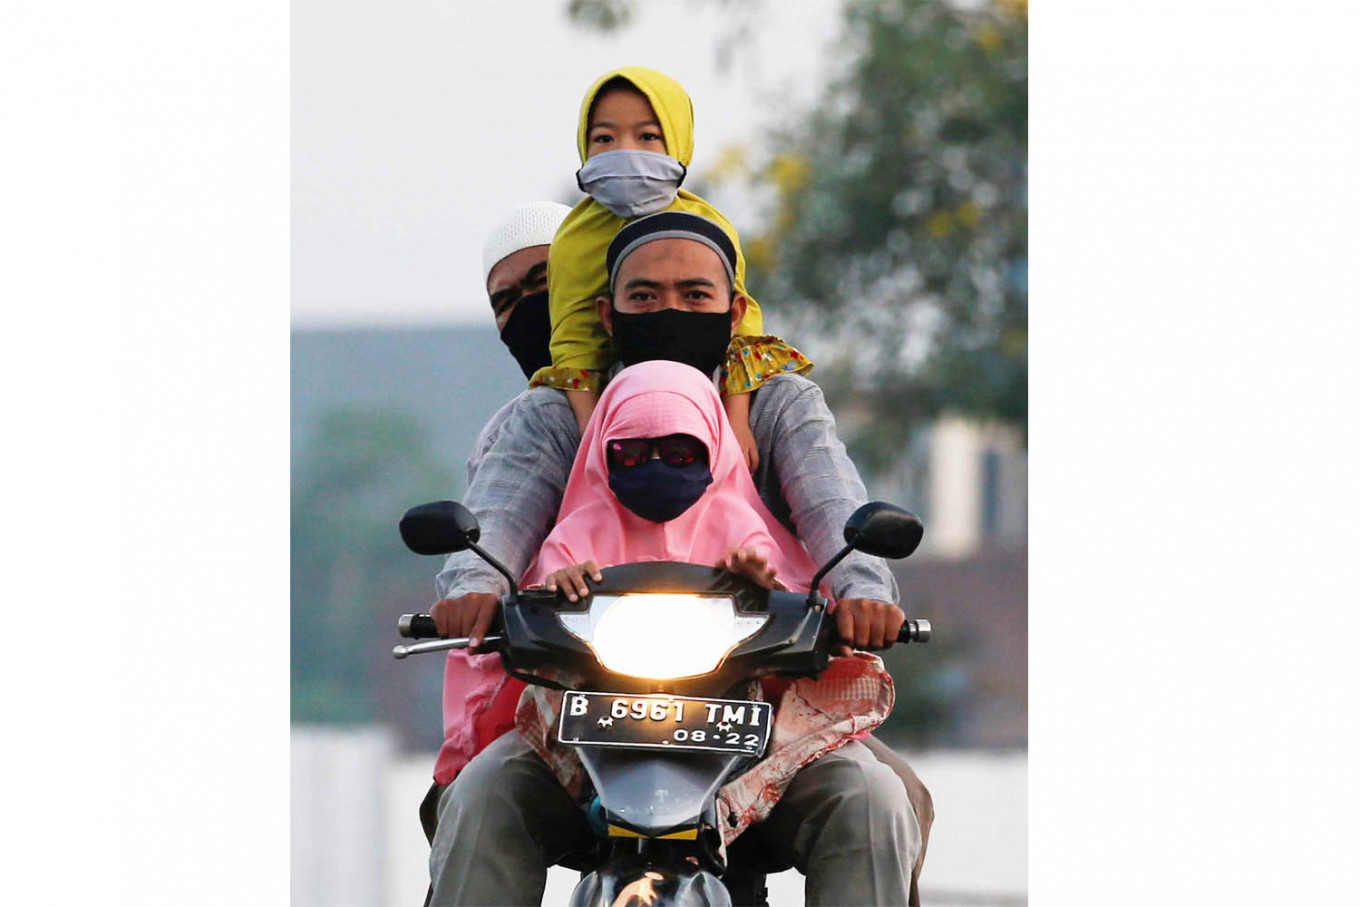 Family bonding: Two men and a young girl ride a motorcycle to attend Idul Fitri prayers amid the COVID-19 outbreak in Bekasi, West Java, on Sunday. Reuters/Willy Kurniawan